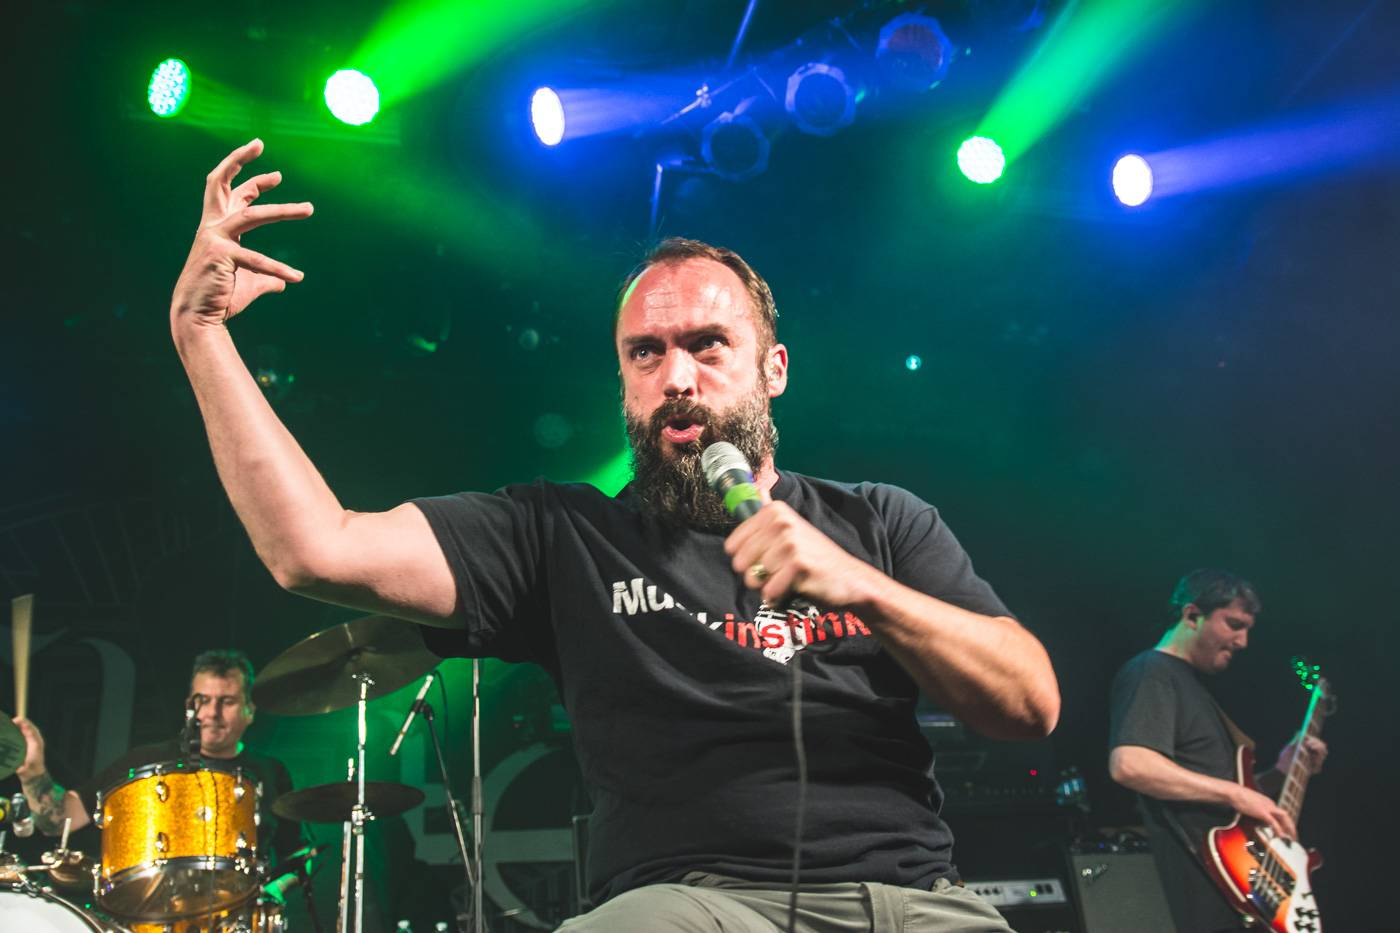 Clutch at the Commodore Ballroom, Vancouver, Apr. 23 2015. Pavel Boiko photo.